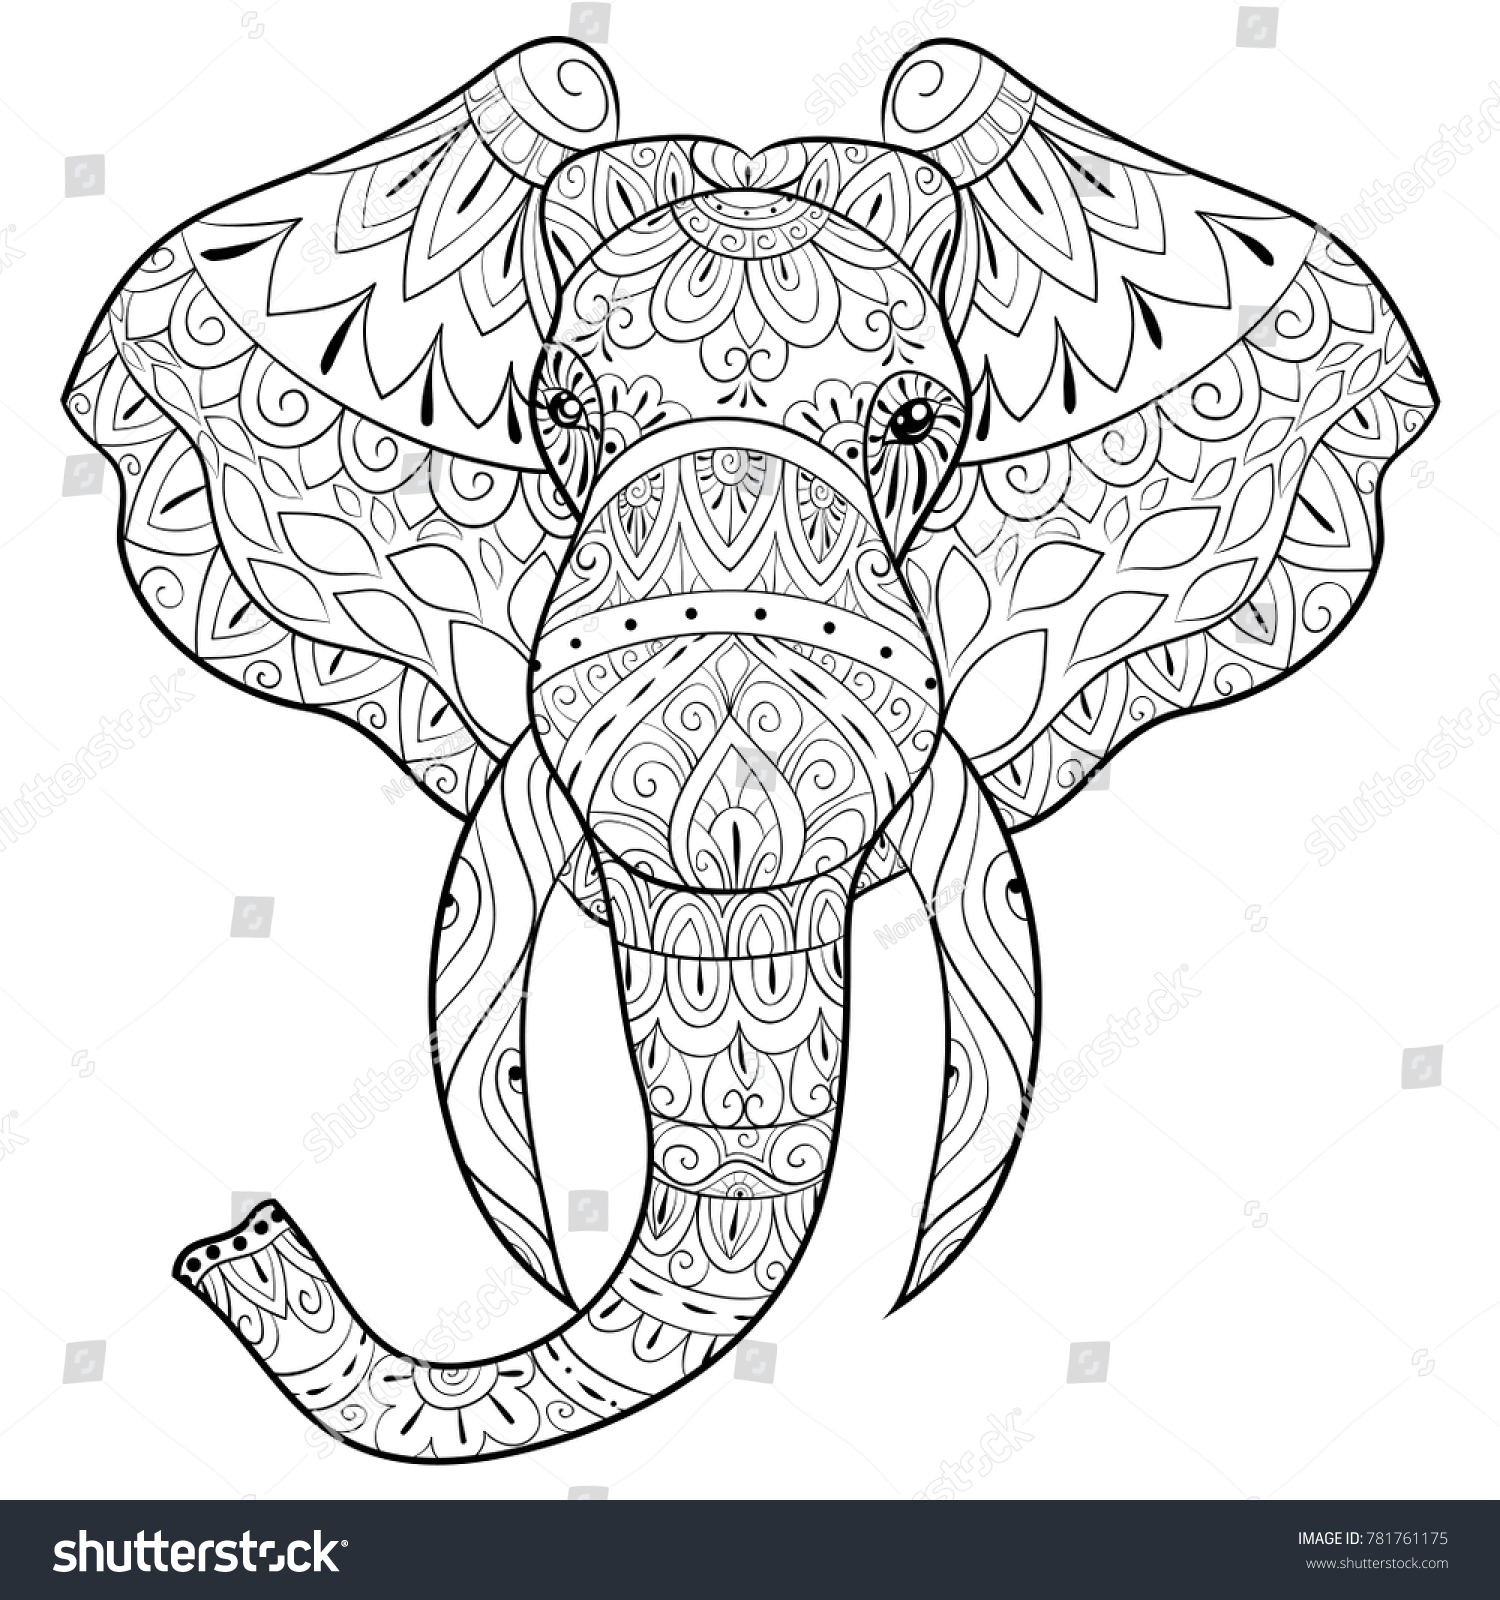 Adult Coloring Bookpage Head Elephant Relaxing Stock Vector ...